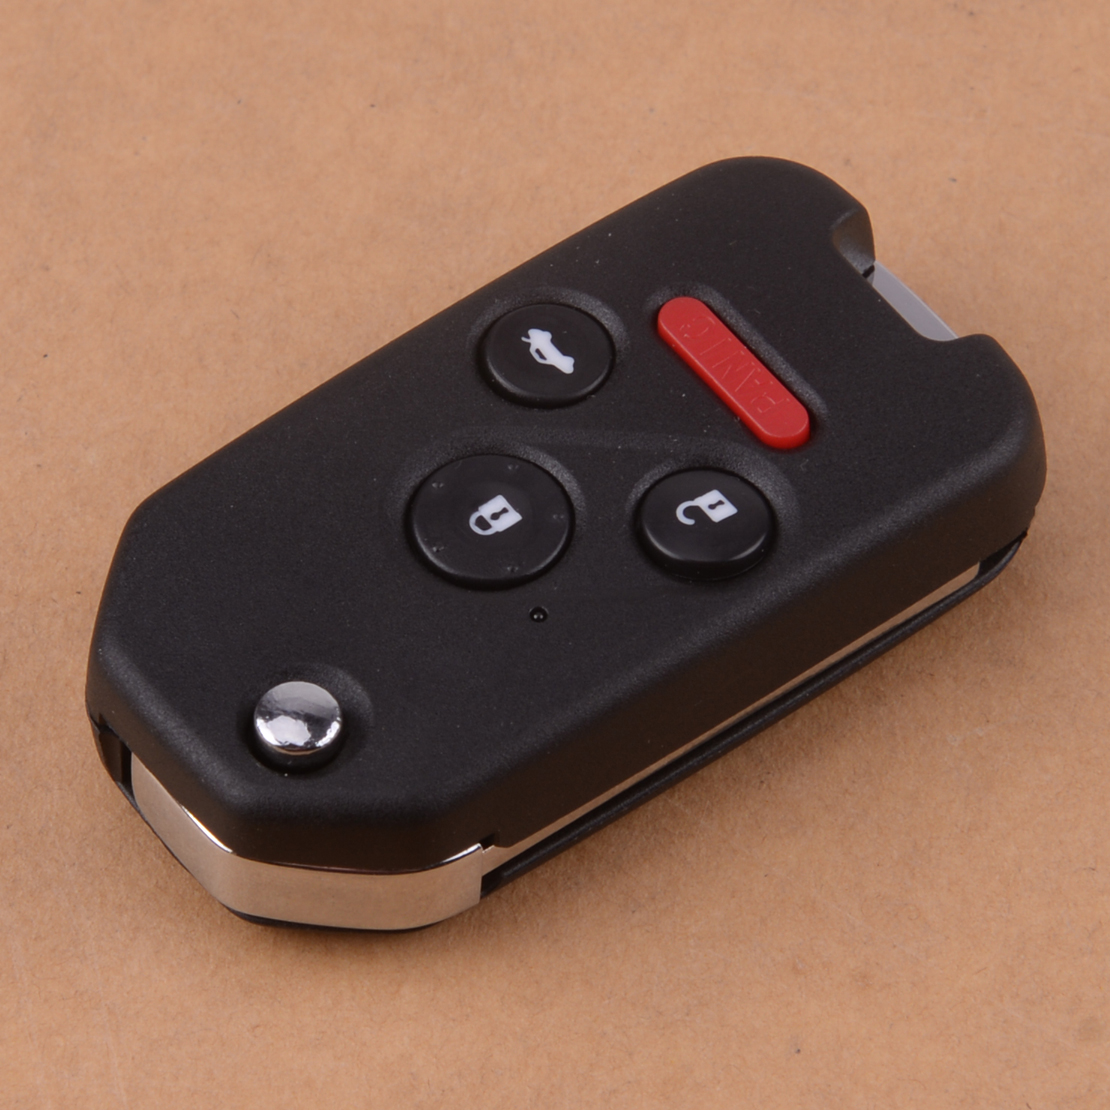 beler 4 Button 313.8Mhz Car <font><b>Flip</b></font> <font><b>Remote</b></font> Key Fob ID46 Chip Fit for <font><b>Honda</b></font> <font><b>Accord</b></font> Civic 2003 2004 2005 2006 2007 image